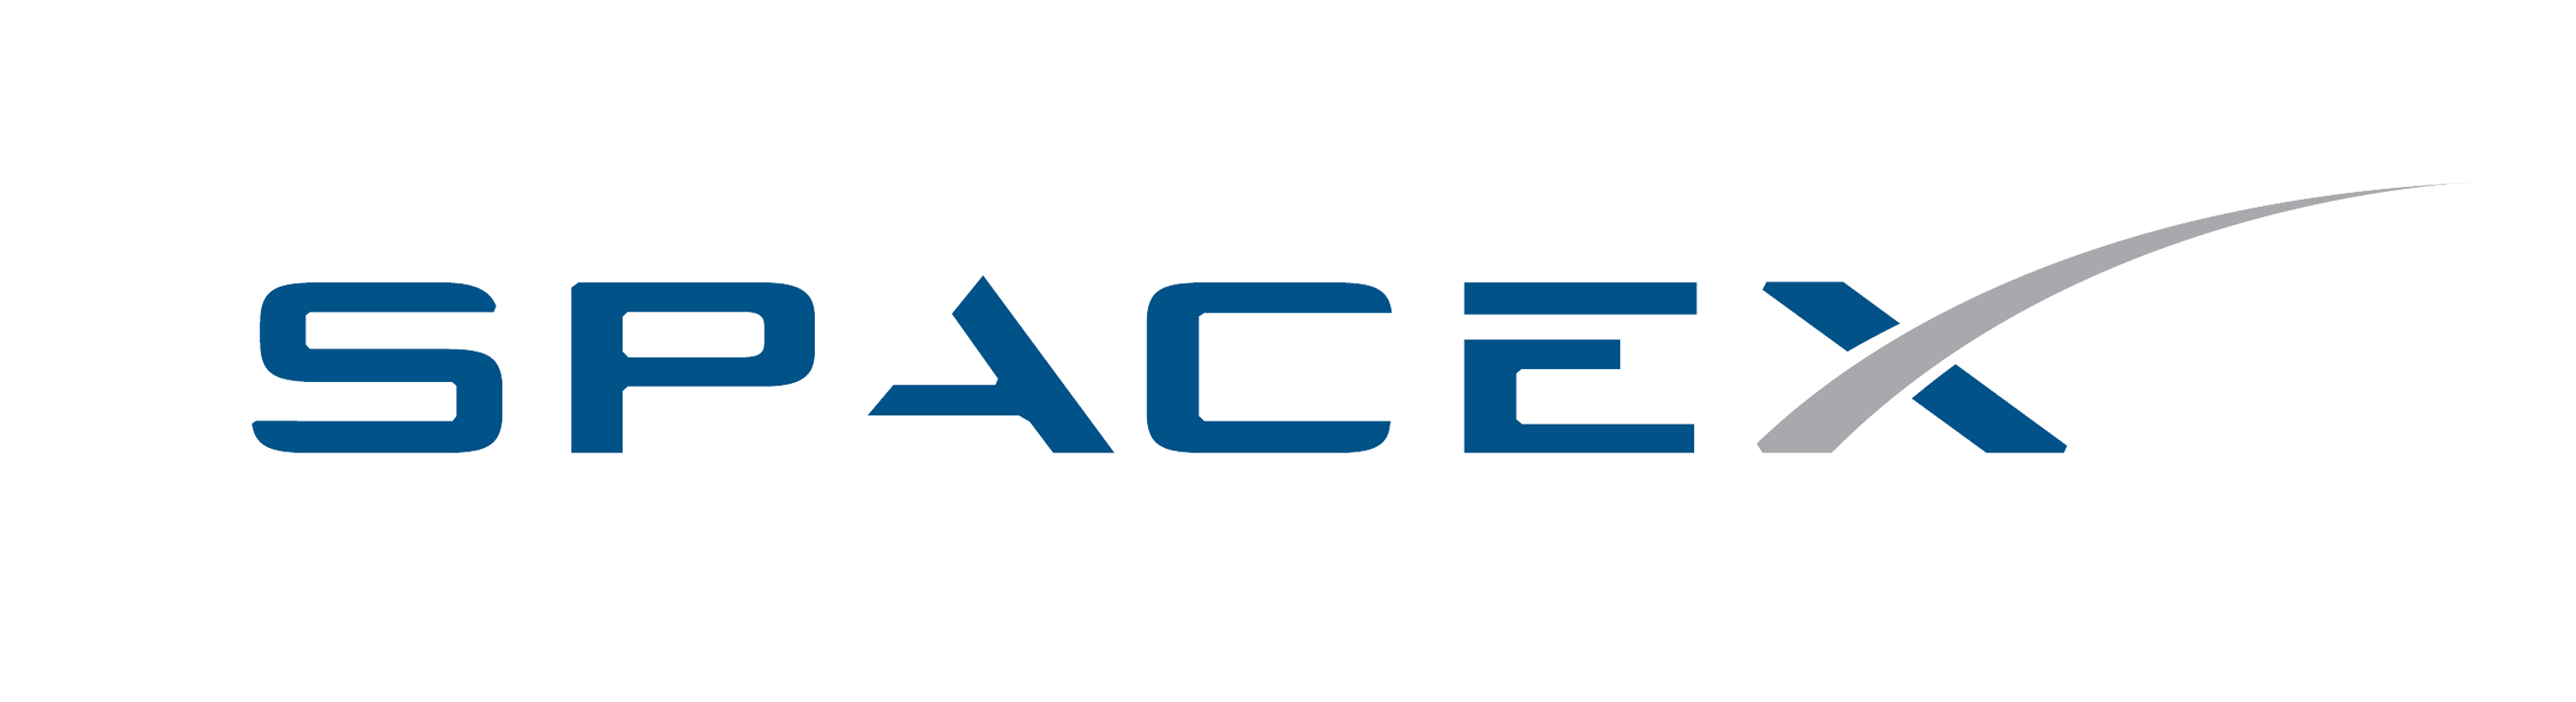 College of engineering SpaceX logo